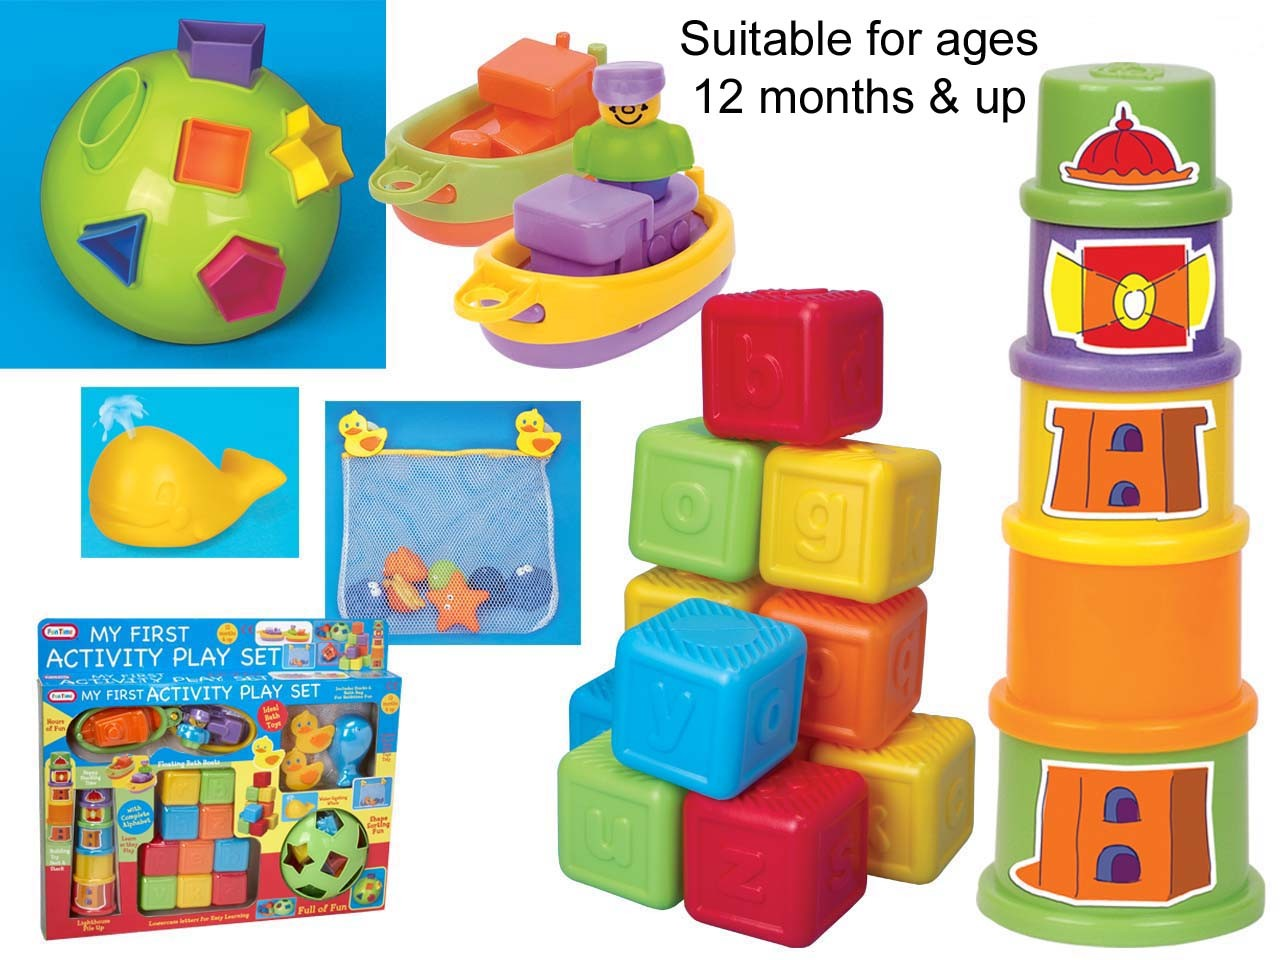 New My First Activity Play Set 5PC Toy Learning Toys